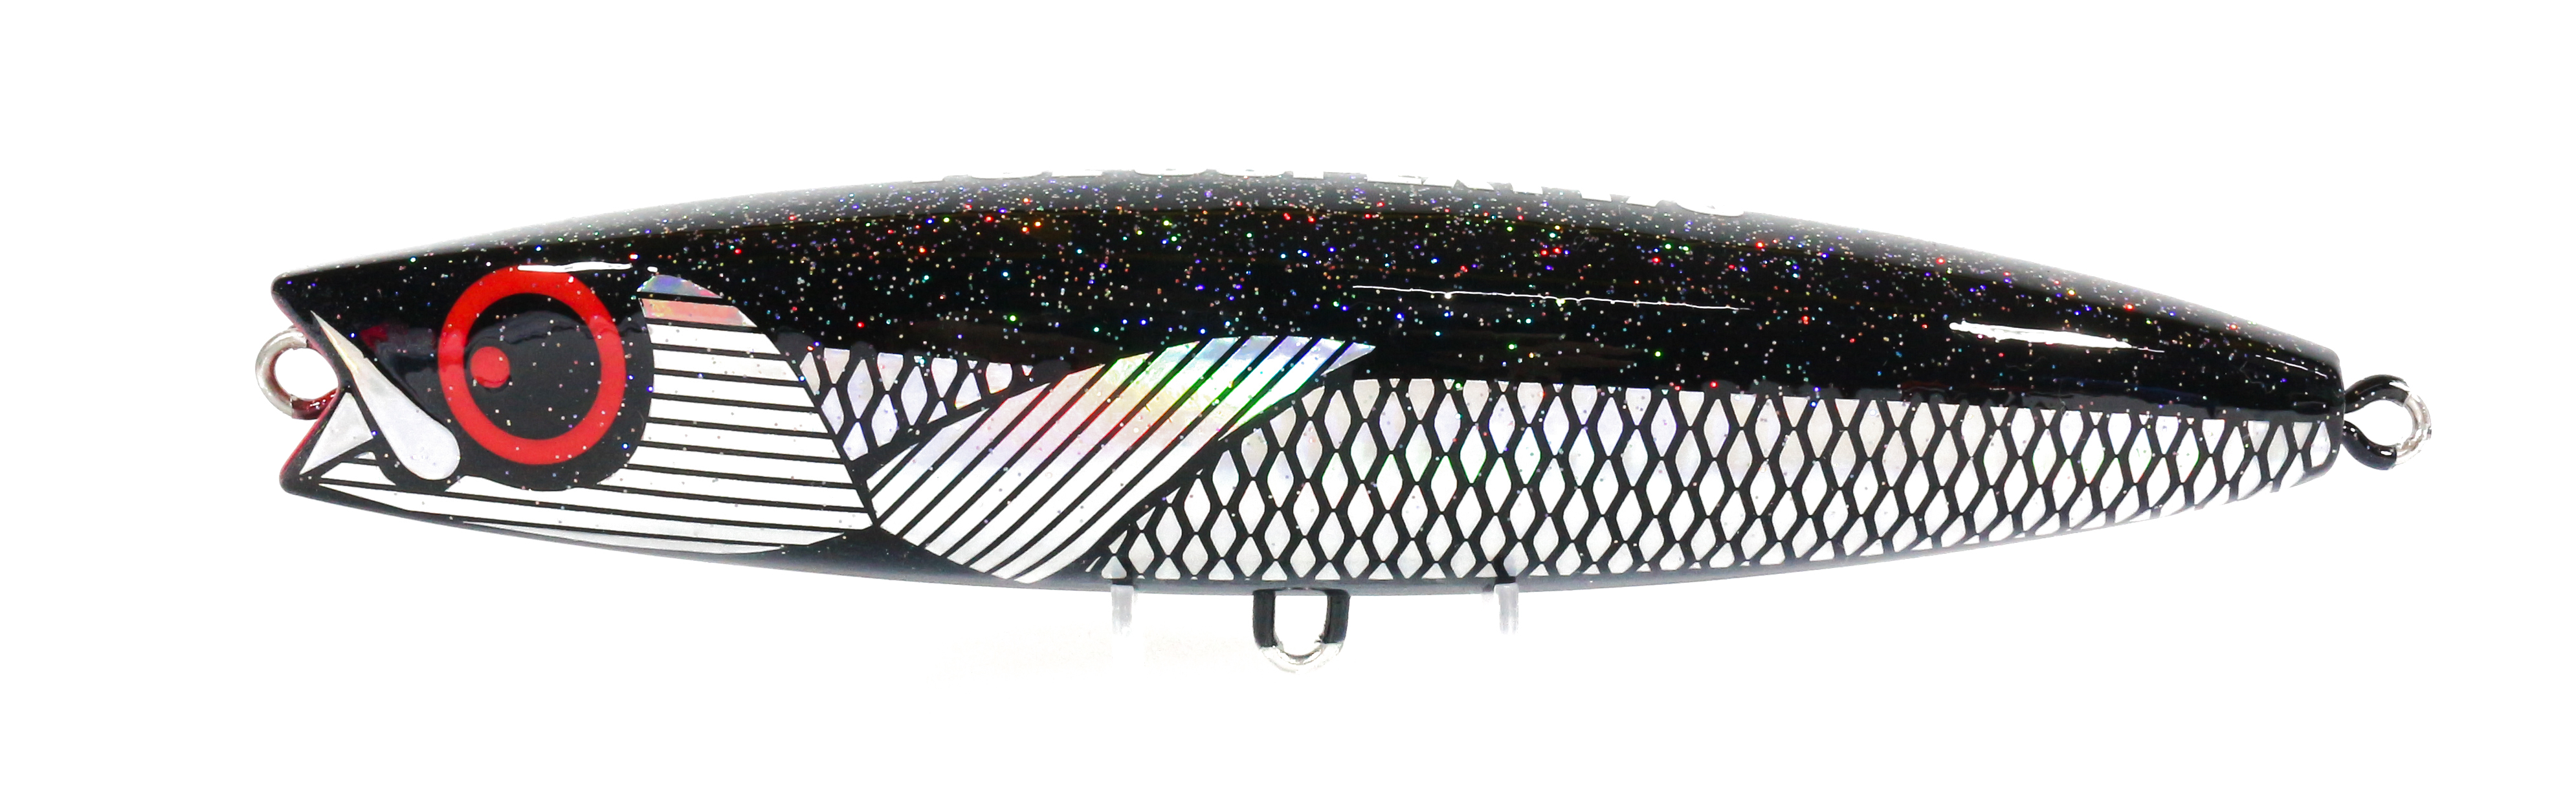 FCL Labo Stick Bait CSP EXT 170 Floating Lure ABK (8588)